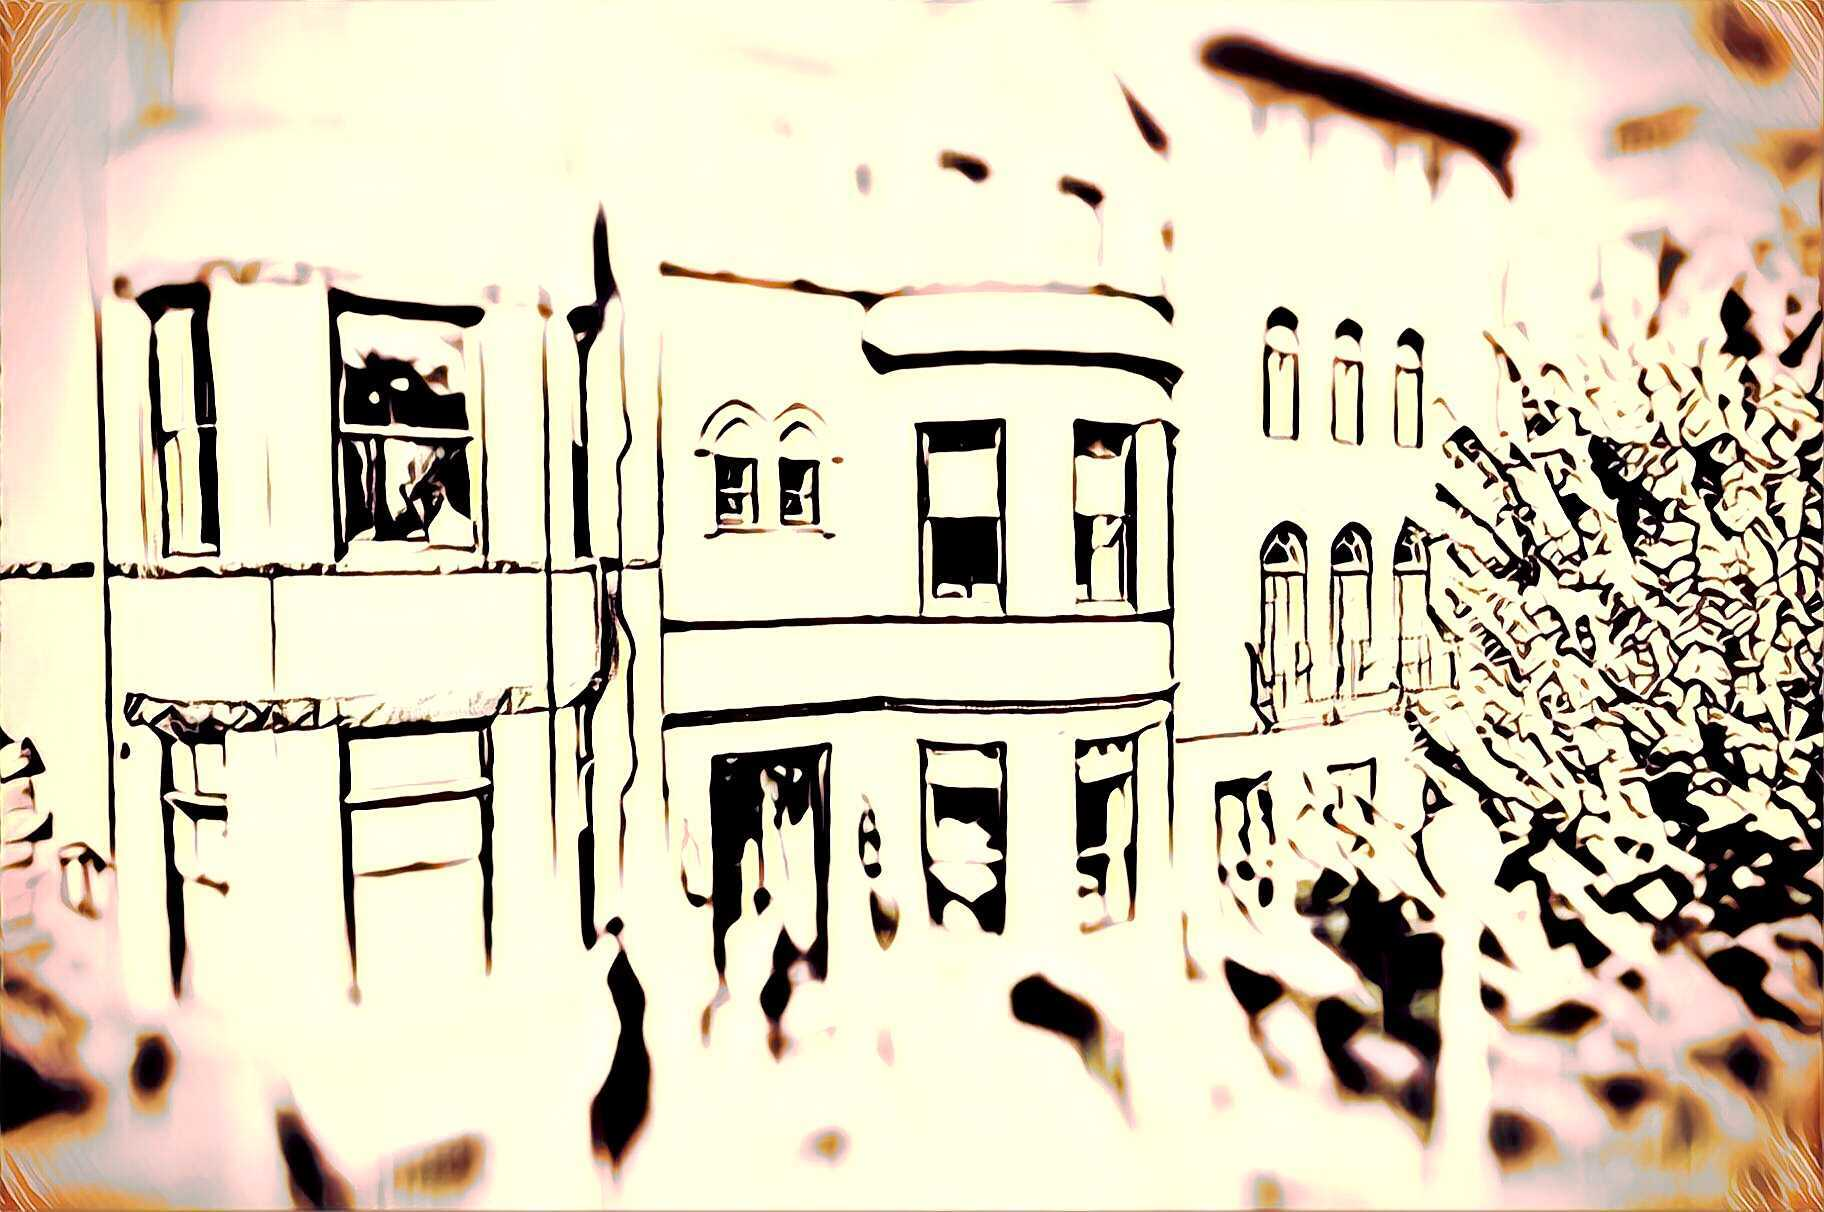 overexposed image of a townhouse